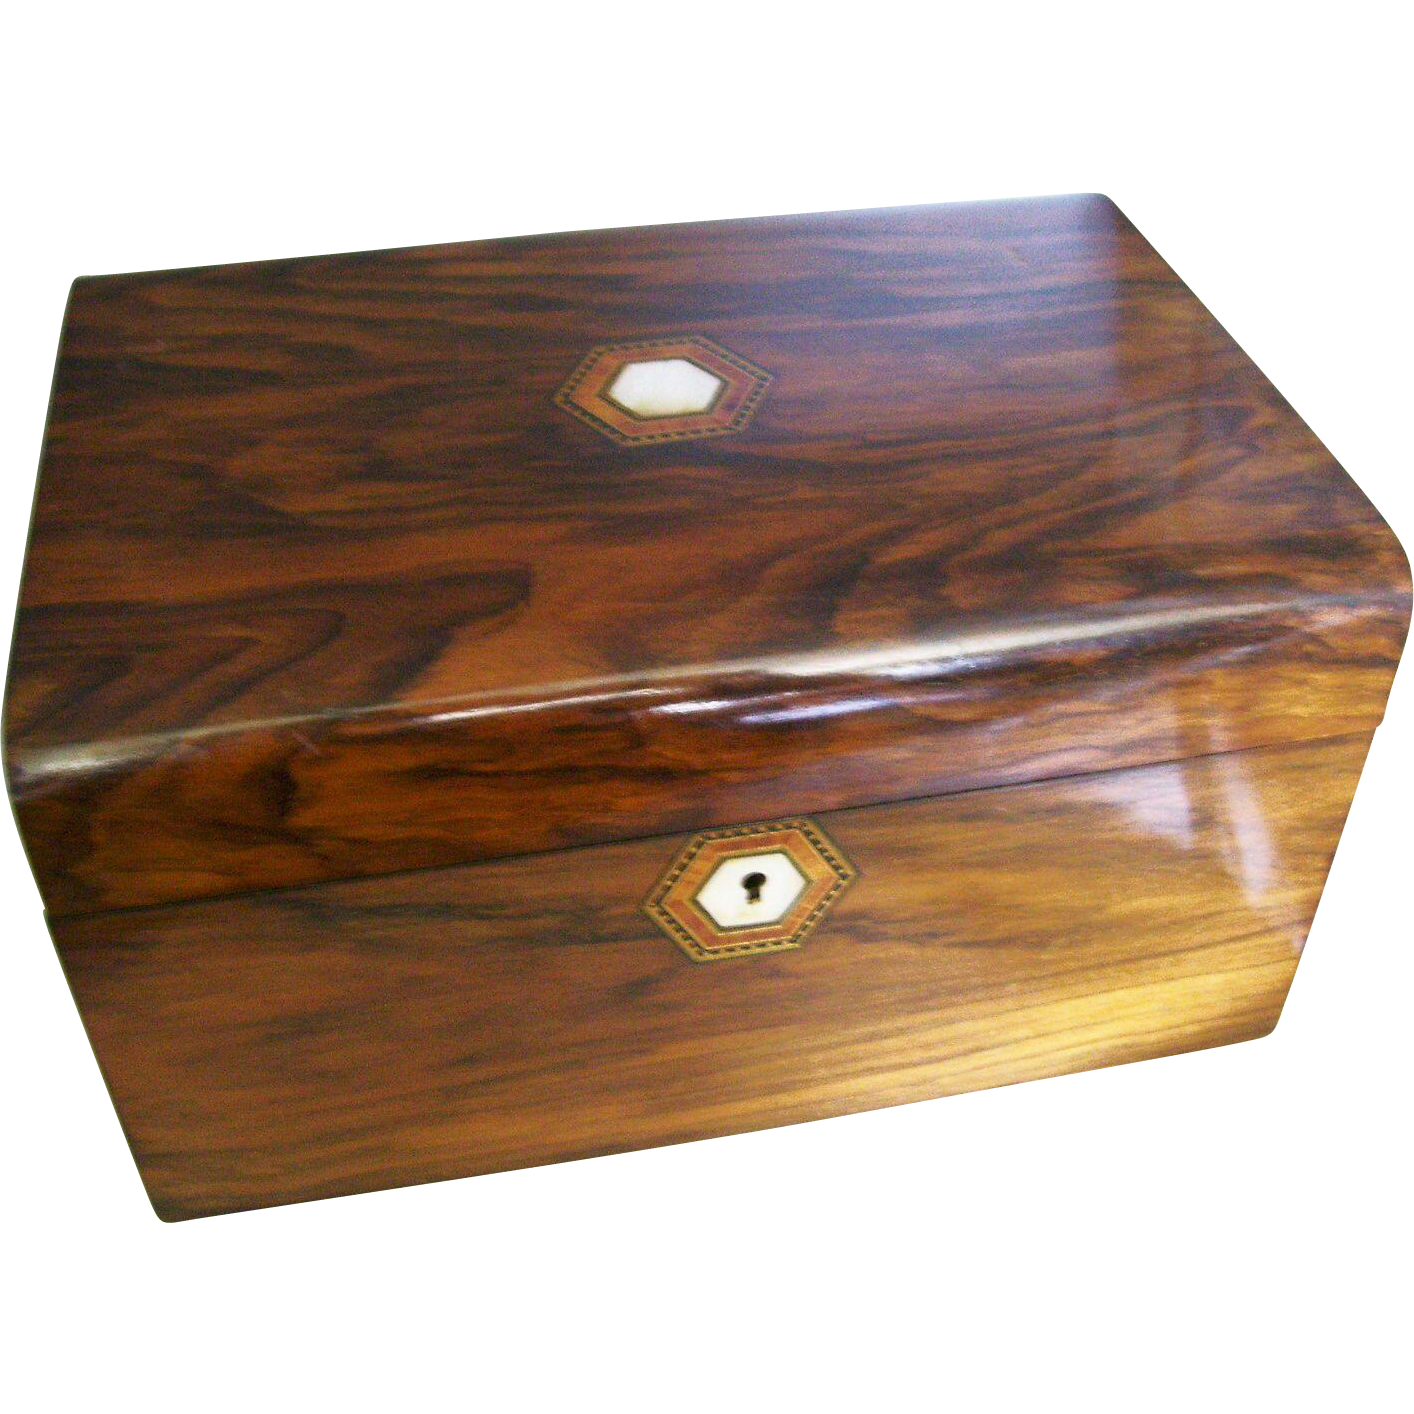 Lovely English Walnut Victorian Work or Sewing Box - ca. 1870